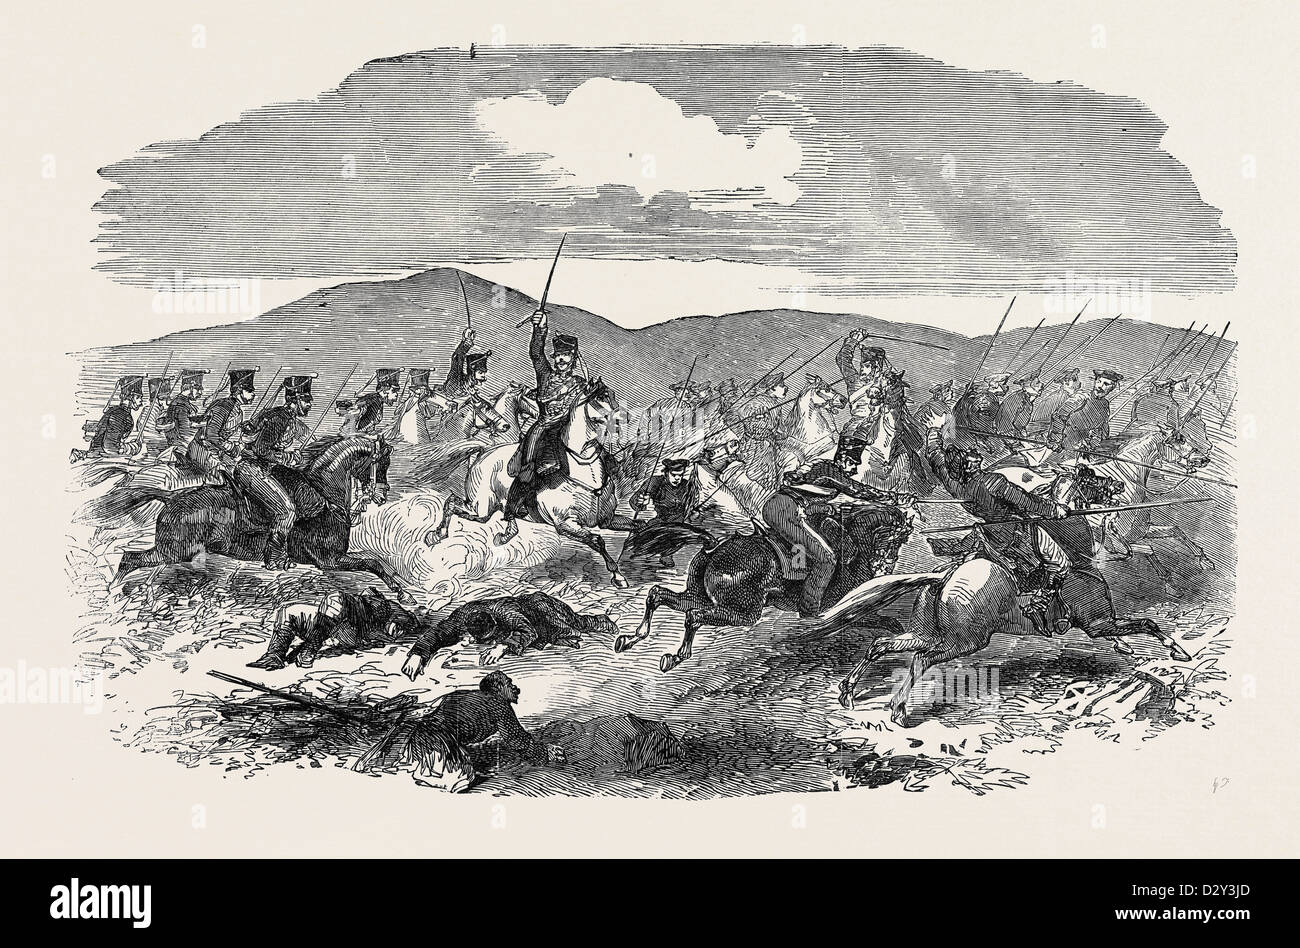 CONFLICT BETWEEN THE 10TH HUSSARS AND COSSACKS, AT KERTCH - Stock Image